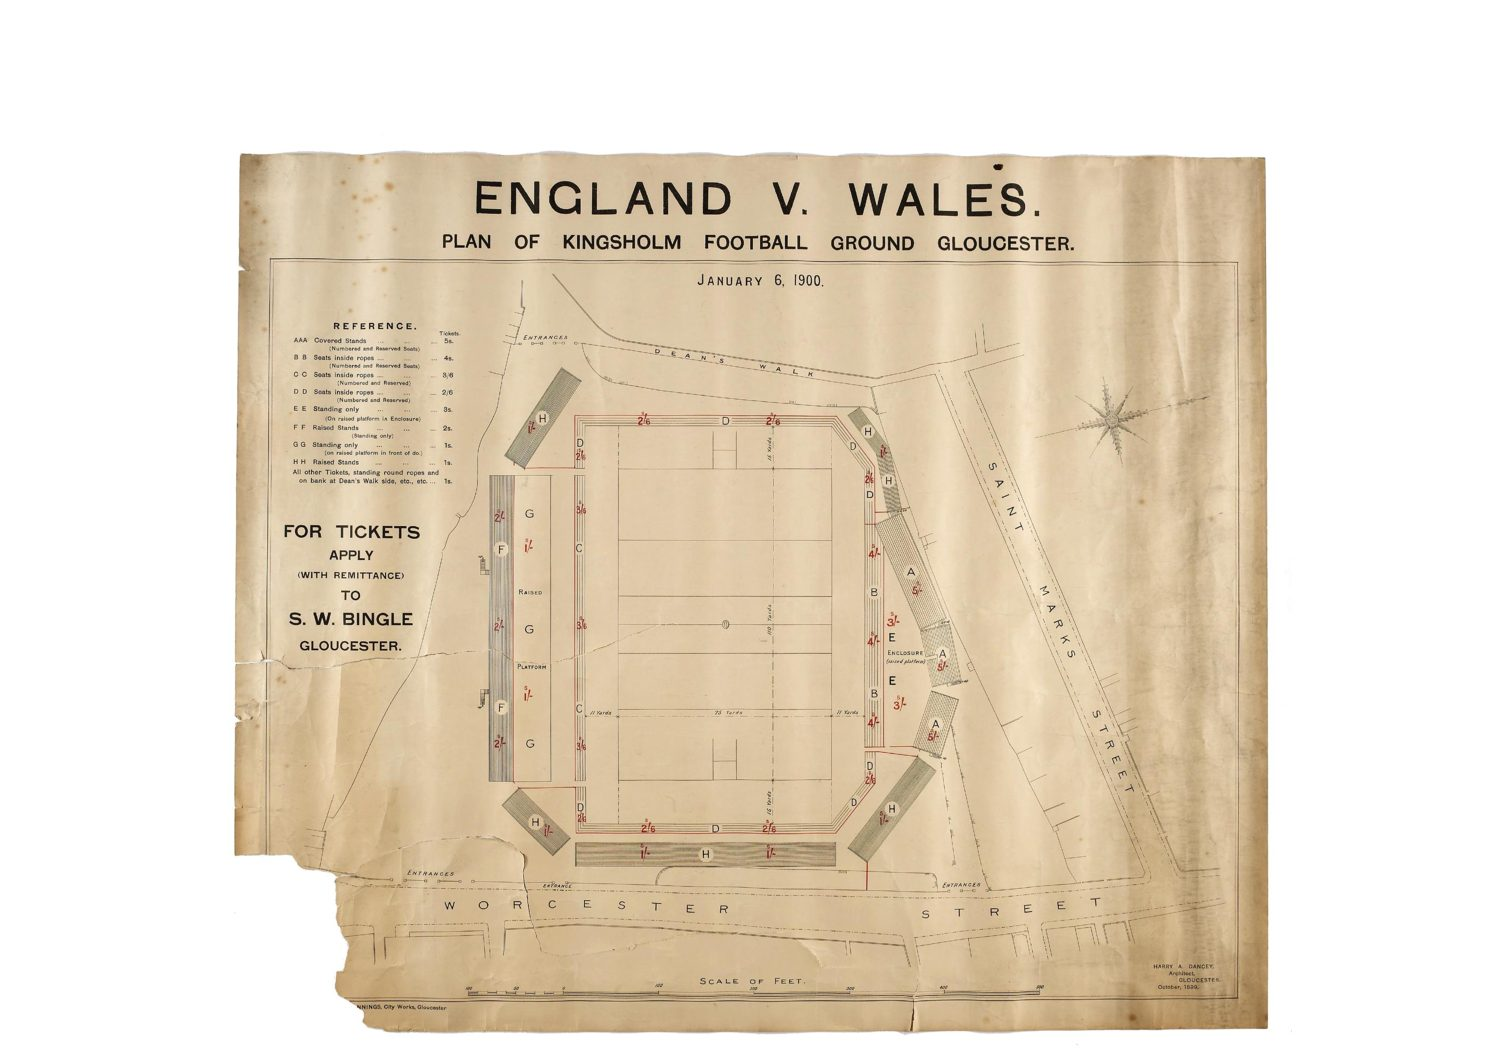 6 Jan 1900: Kingsholm Seating Plan